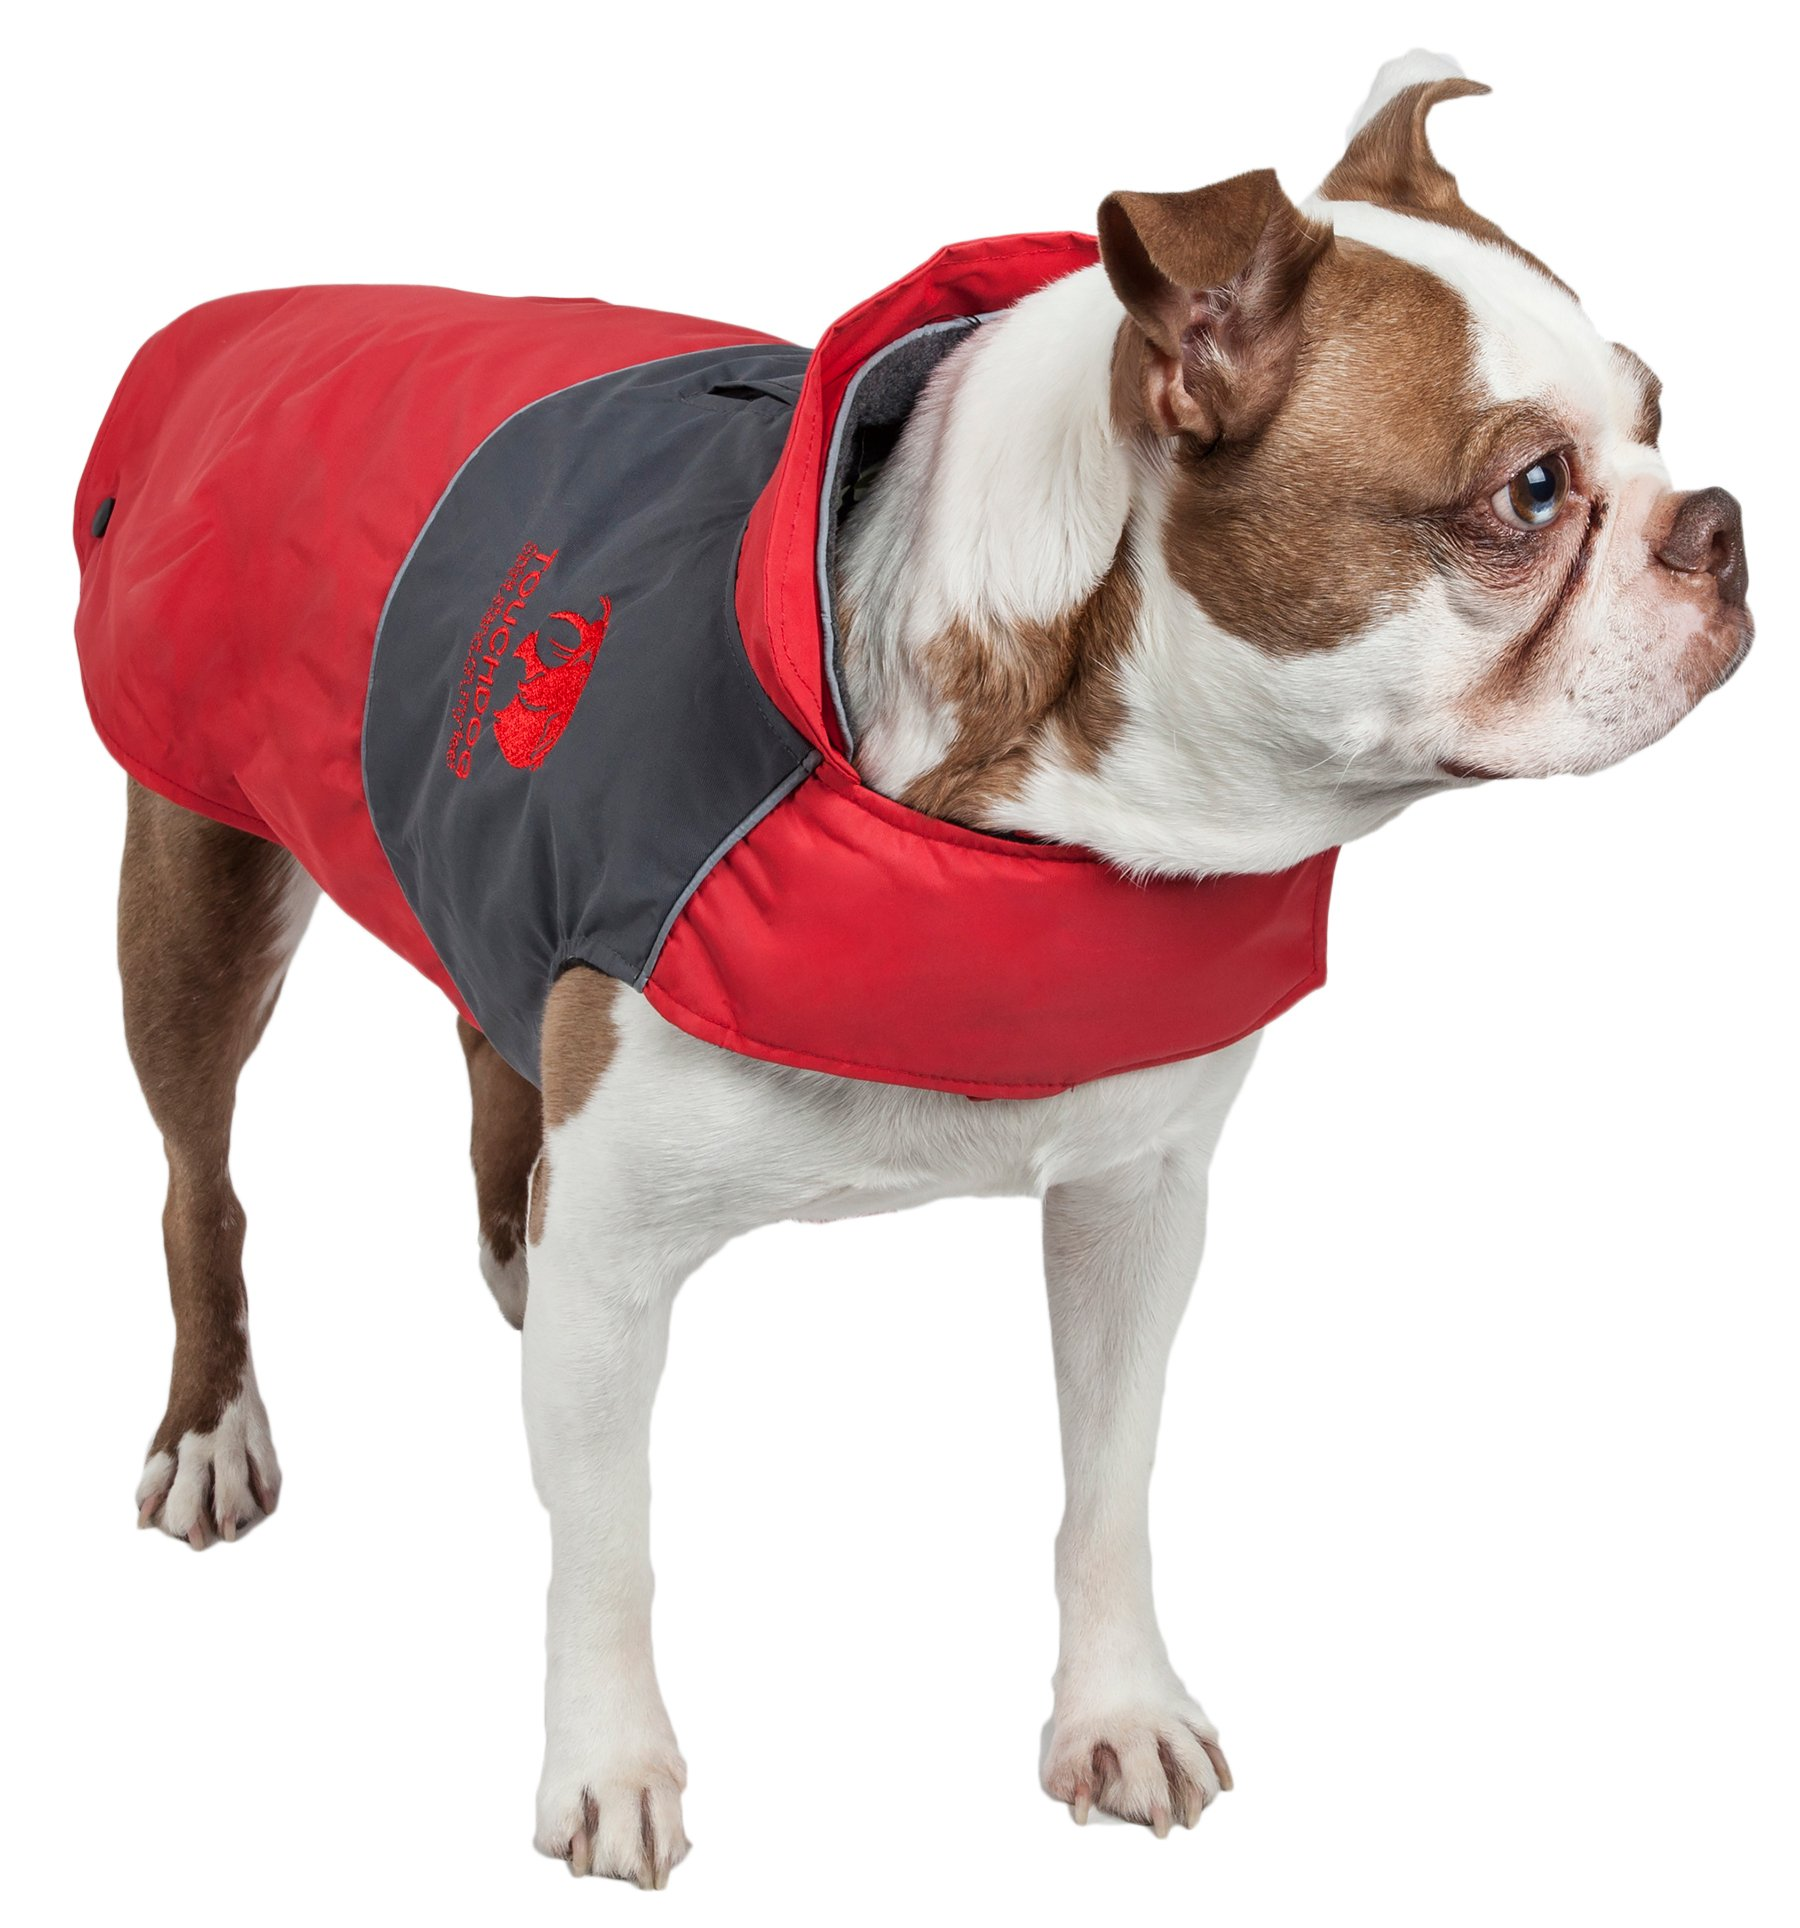 touchdog Lightening-Shield' Waterproof 2-in-1 with Removable Polar Fleece Lining Pet Dog Coat Jacket w/Blackshark Technology, X-Large, Red, Charcoal Black